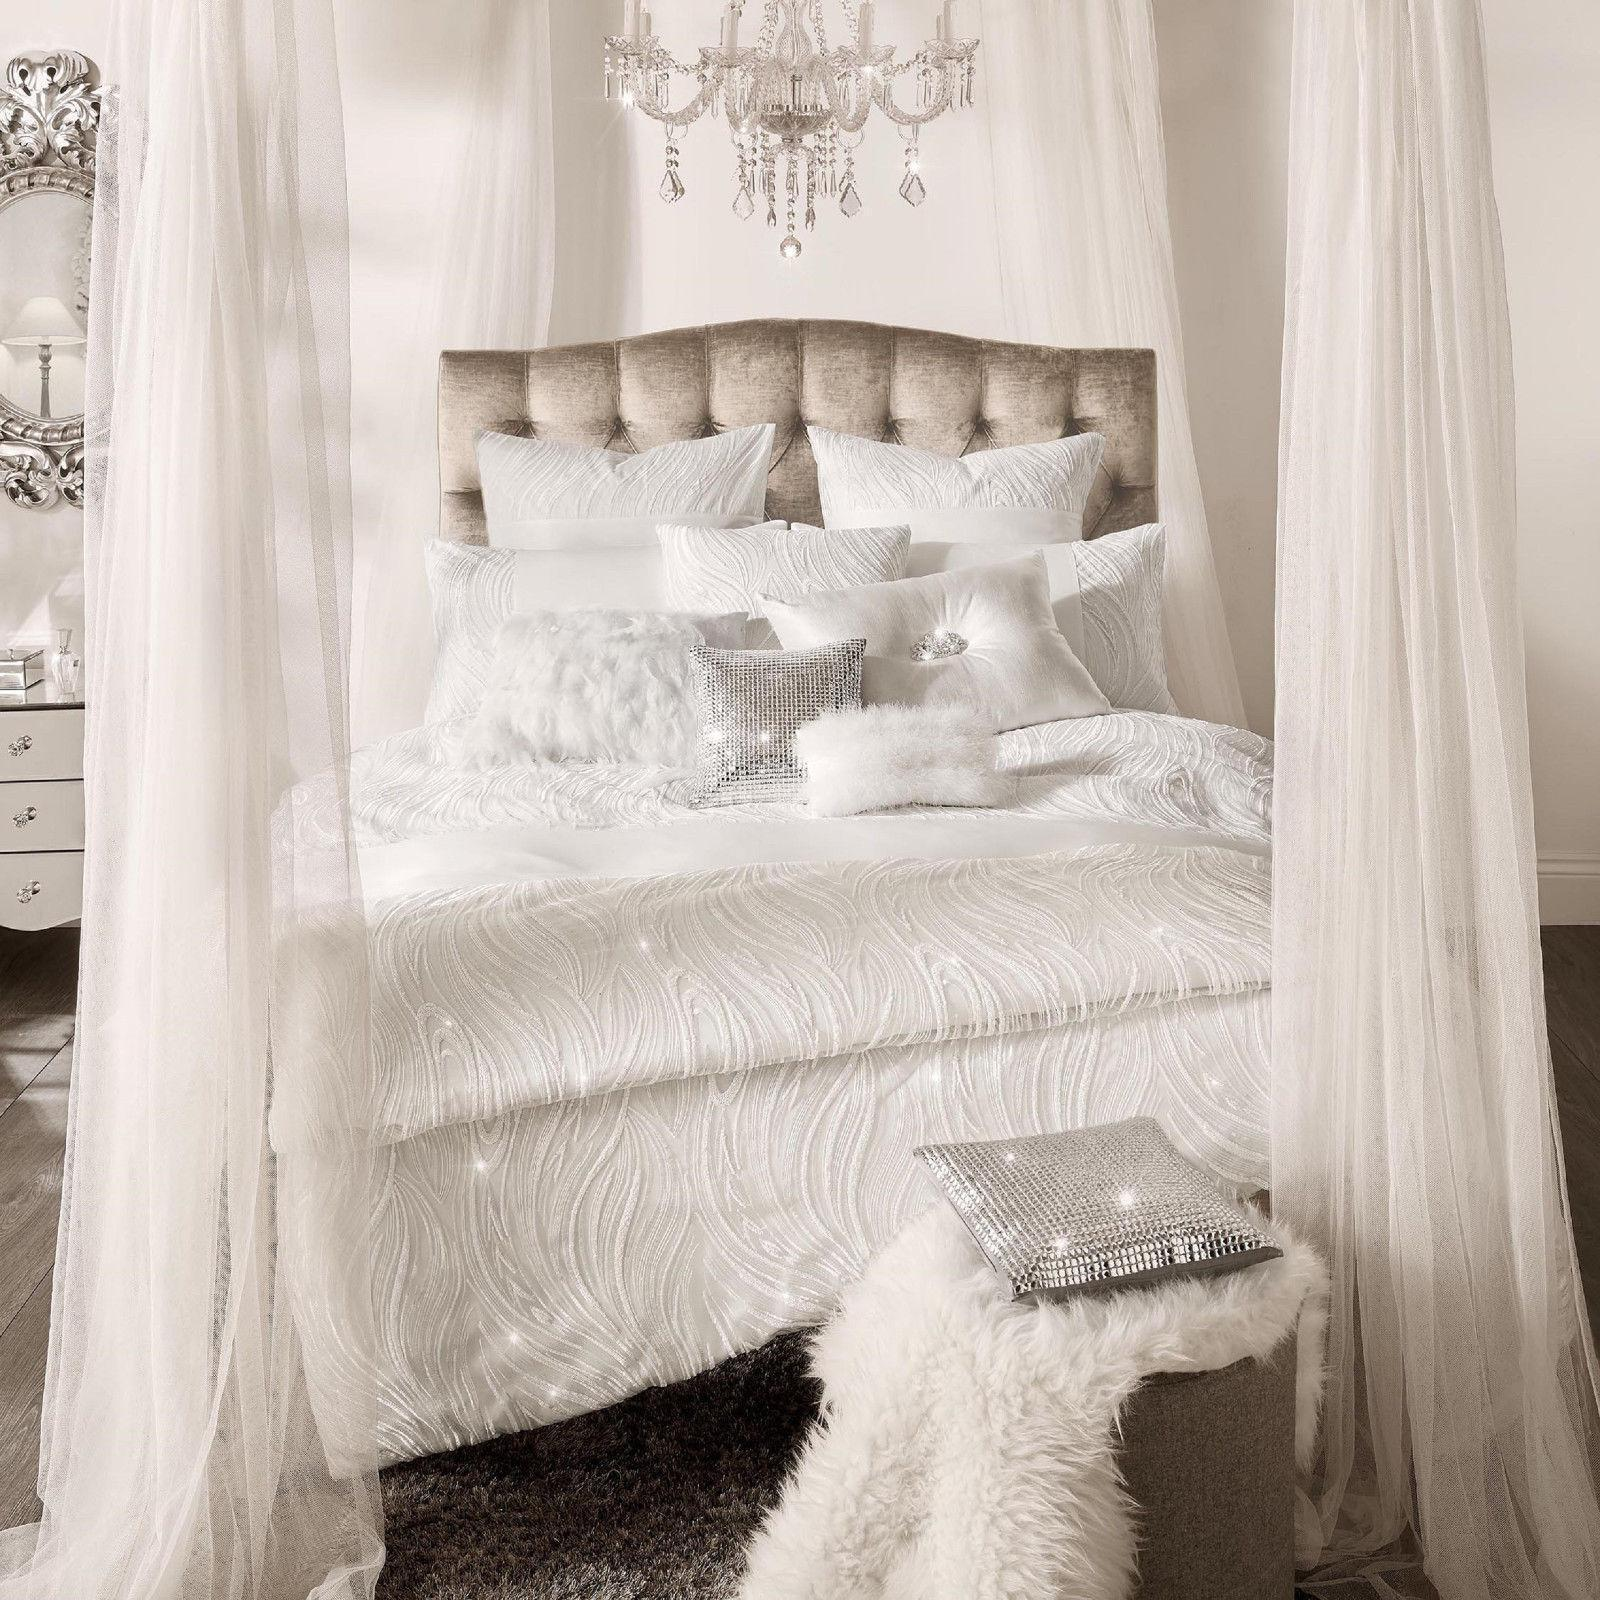 Renata Oyster Bedding by Kylie Minogue At Home Duvet Cover Cushion Pillowcases